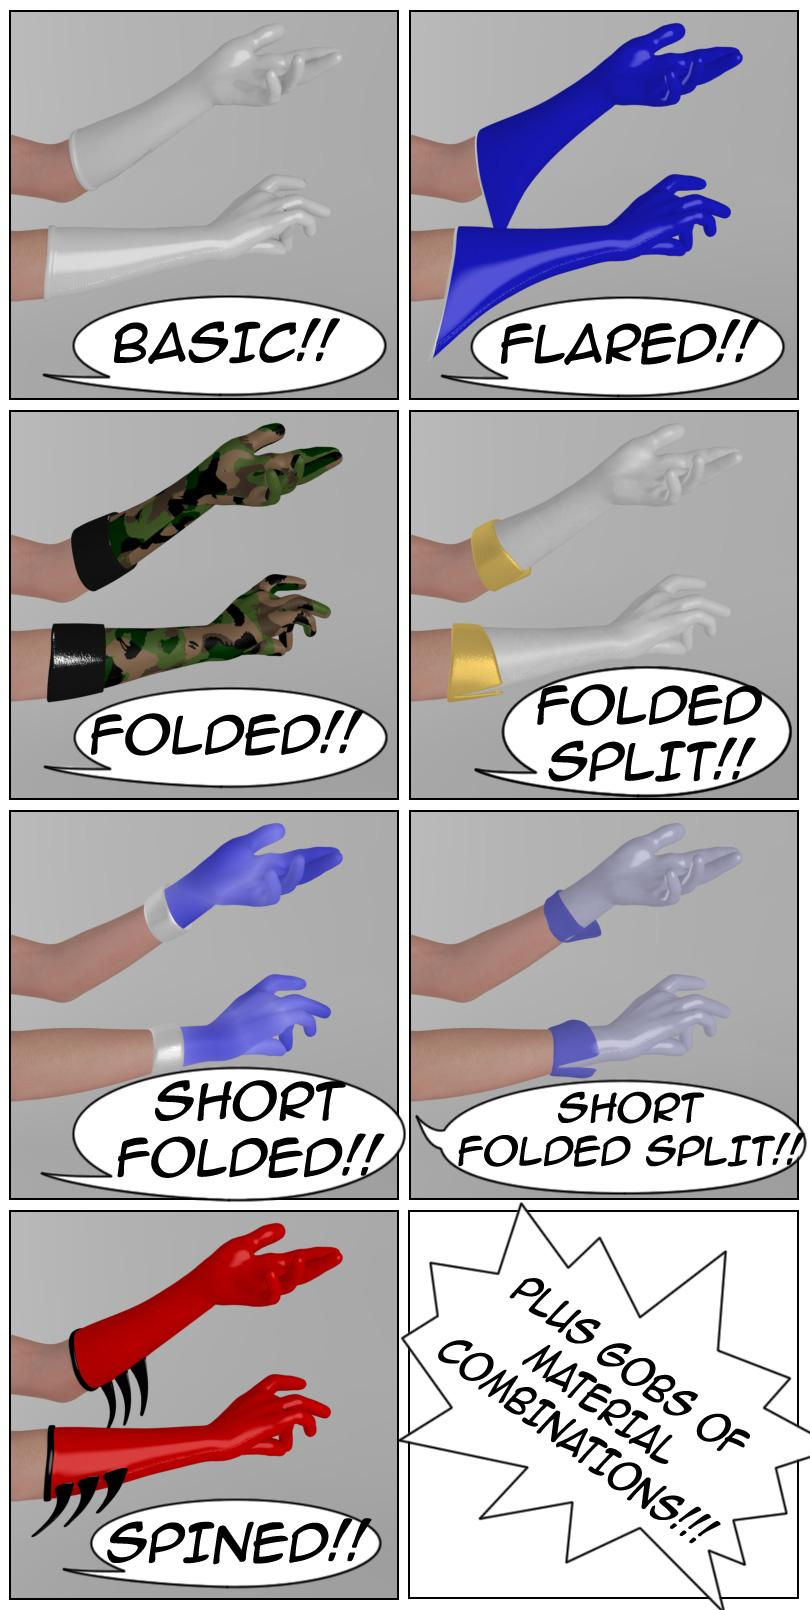 Four Color Gloves promo layout